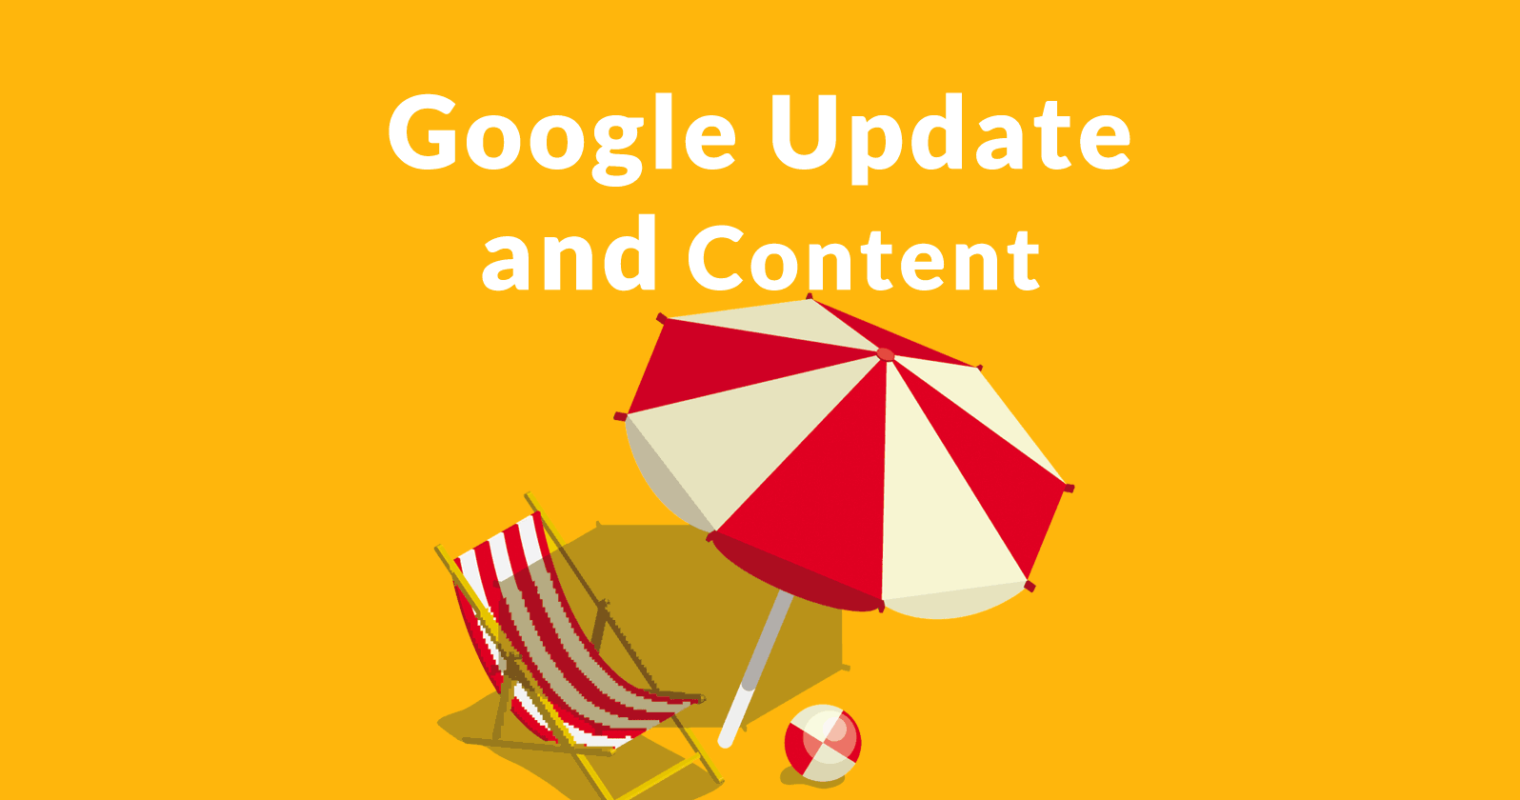 https://res.cloudinary.com/dpyy9uysx/image/upload/v1554179381/seo/google-update-content-strategy-1520x800.png